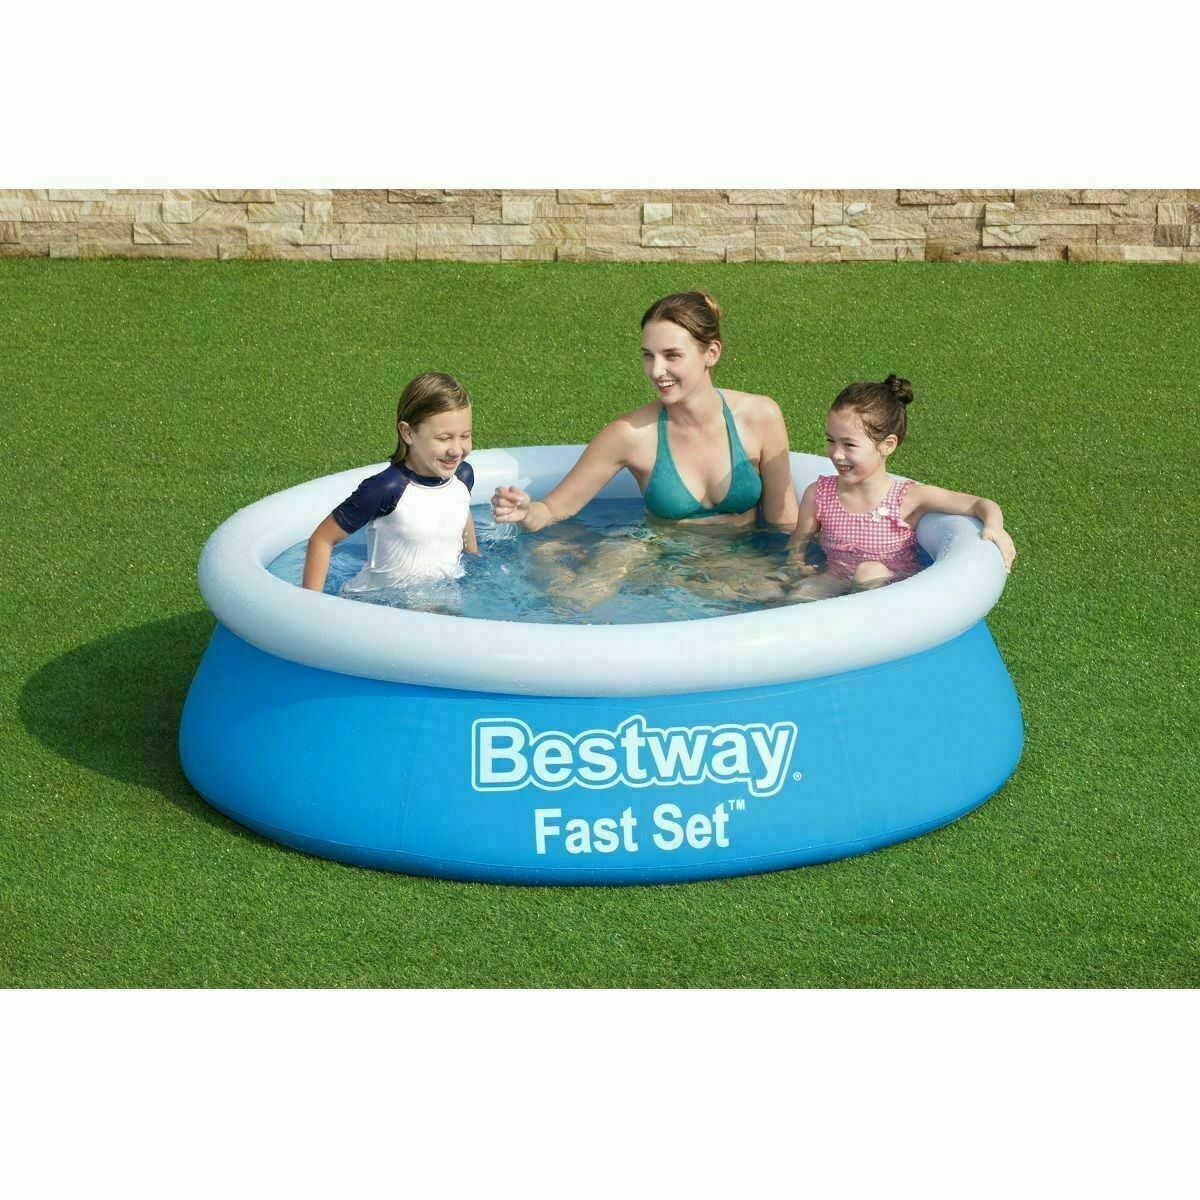 Bestway Inflatable Fast Set Fill And Rise Pool Kids Will Have An Exciting Time R